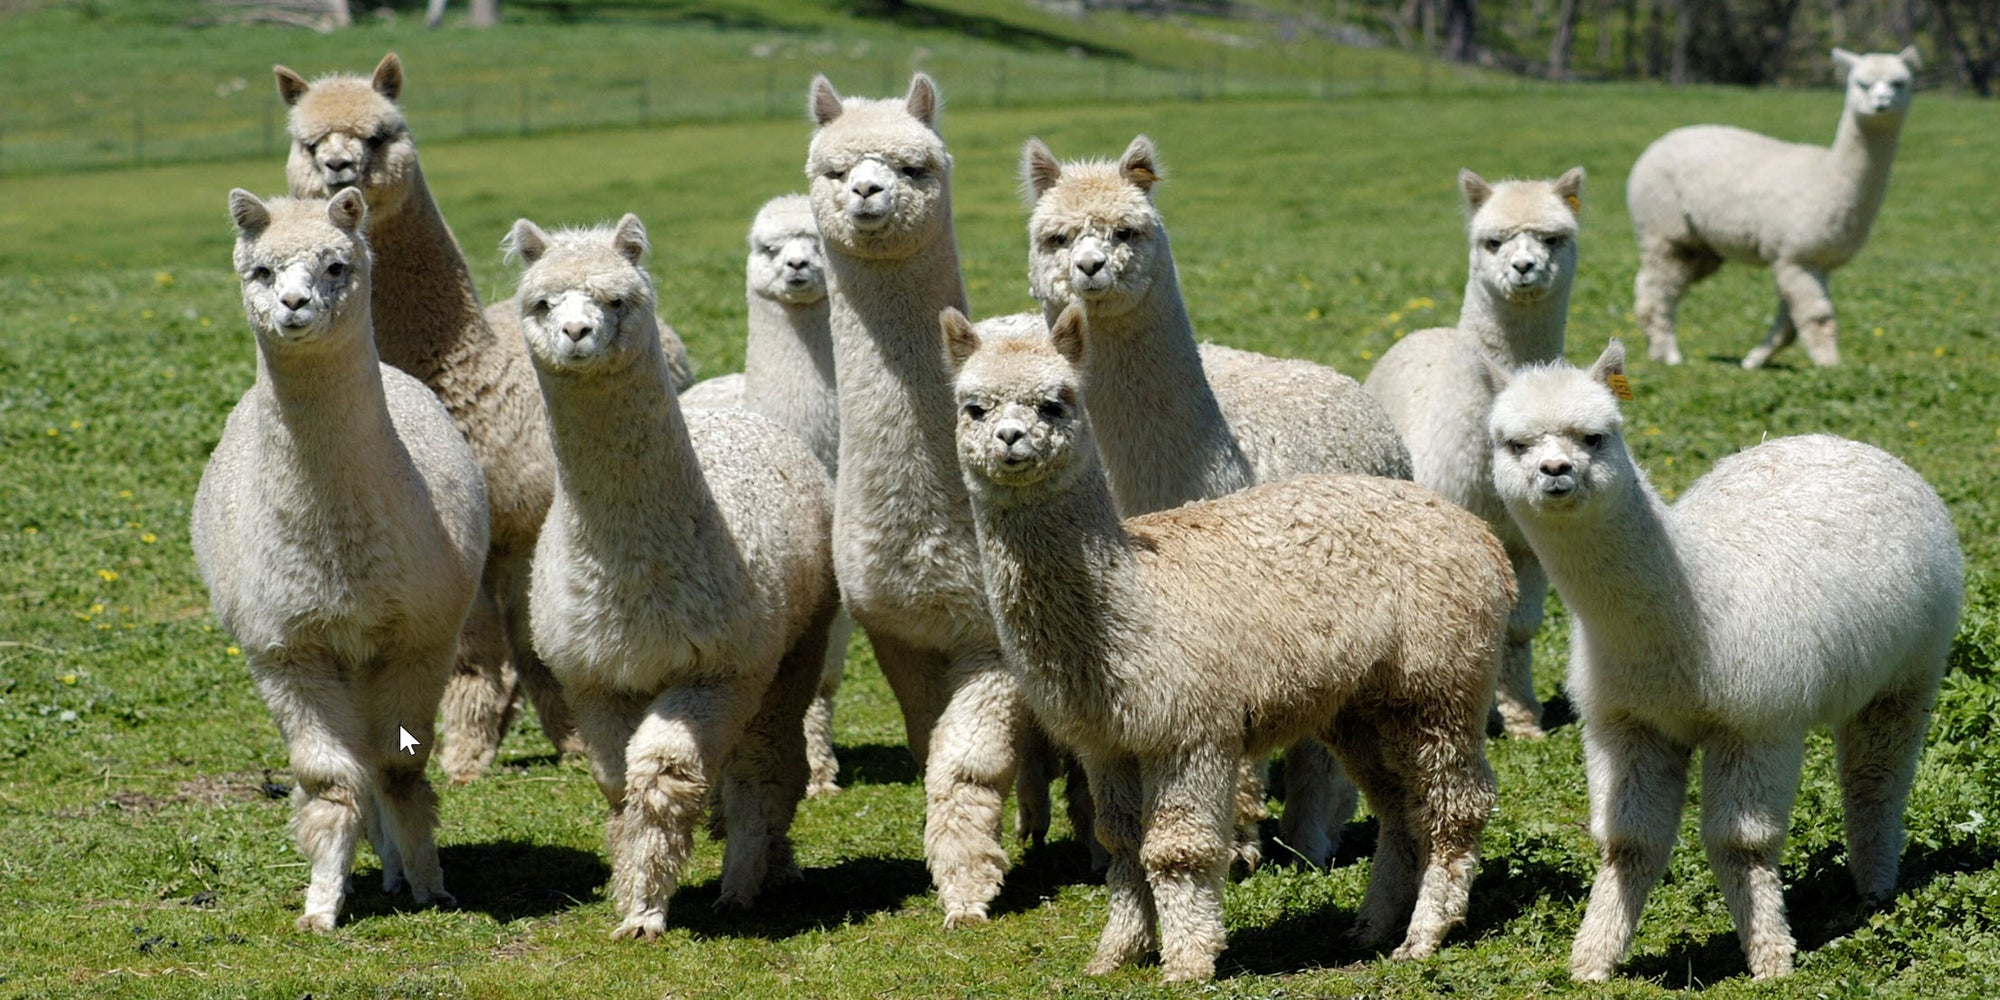 a group of alpacas in Australia